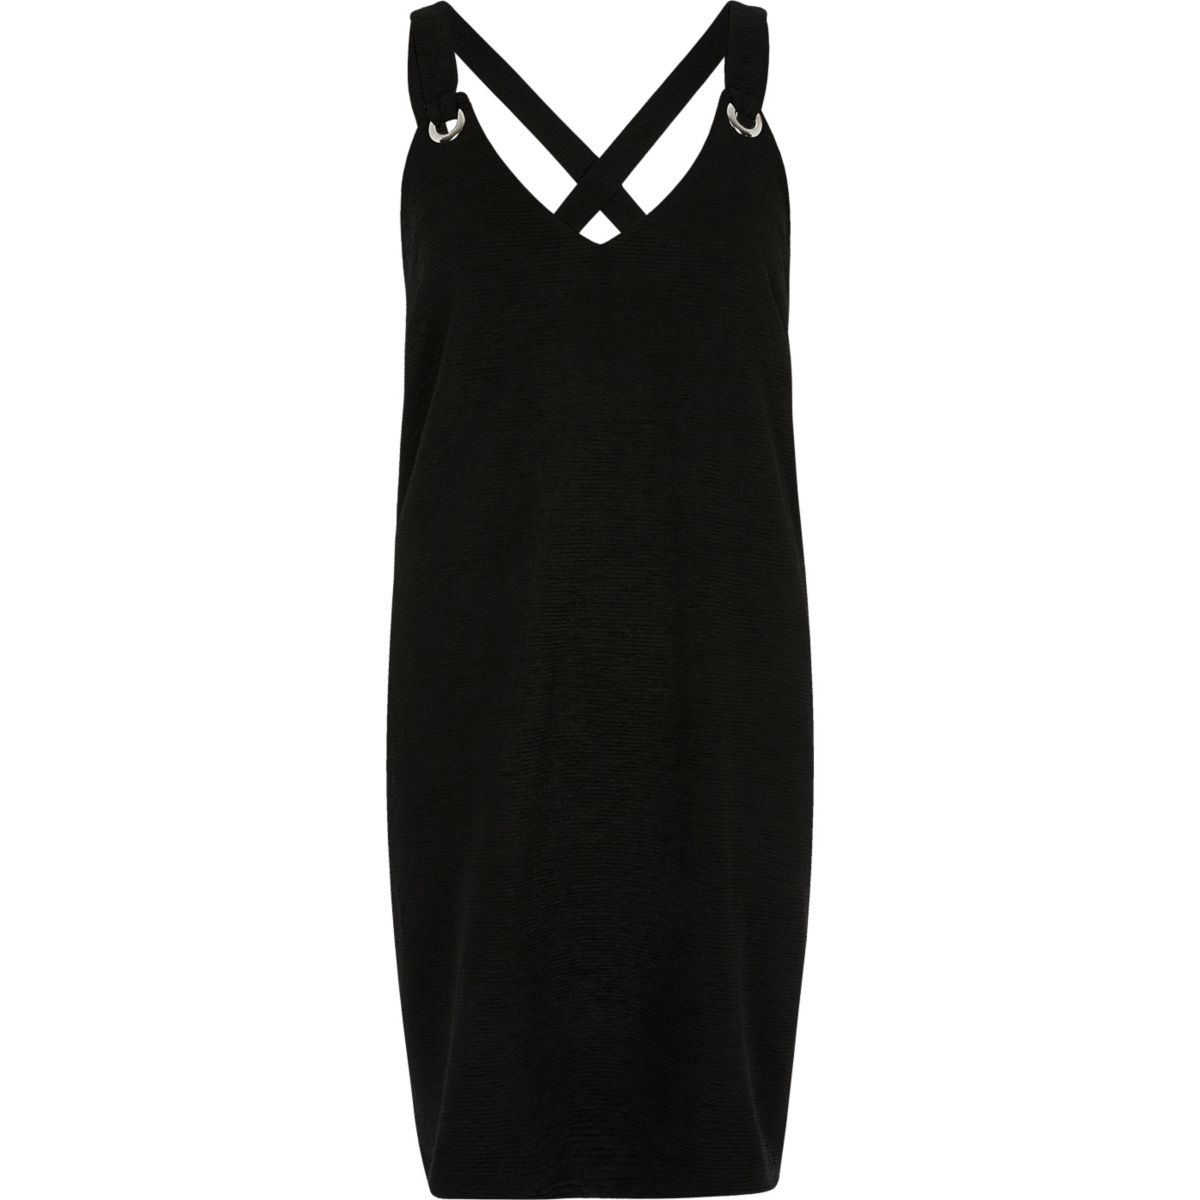 Black eyelet cross back cami slip dress